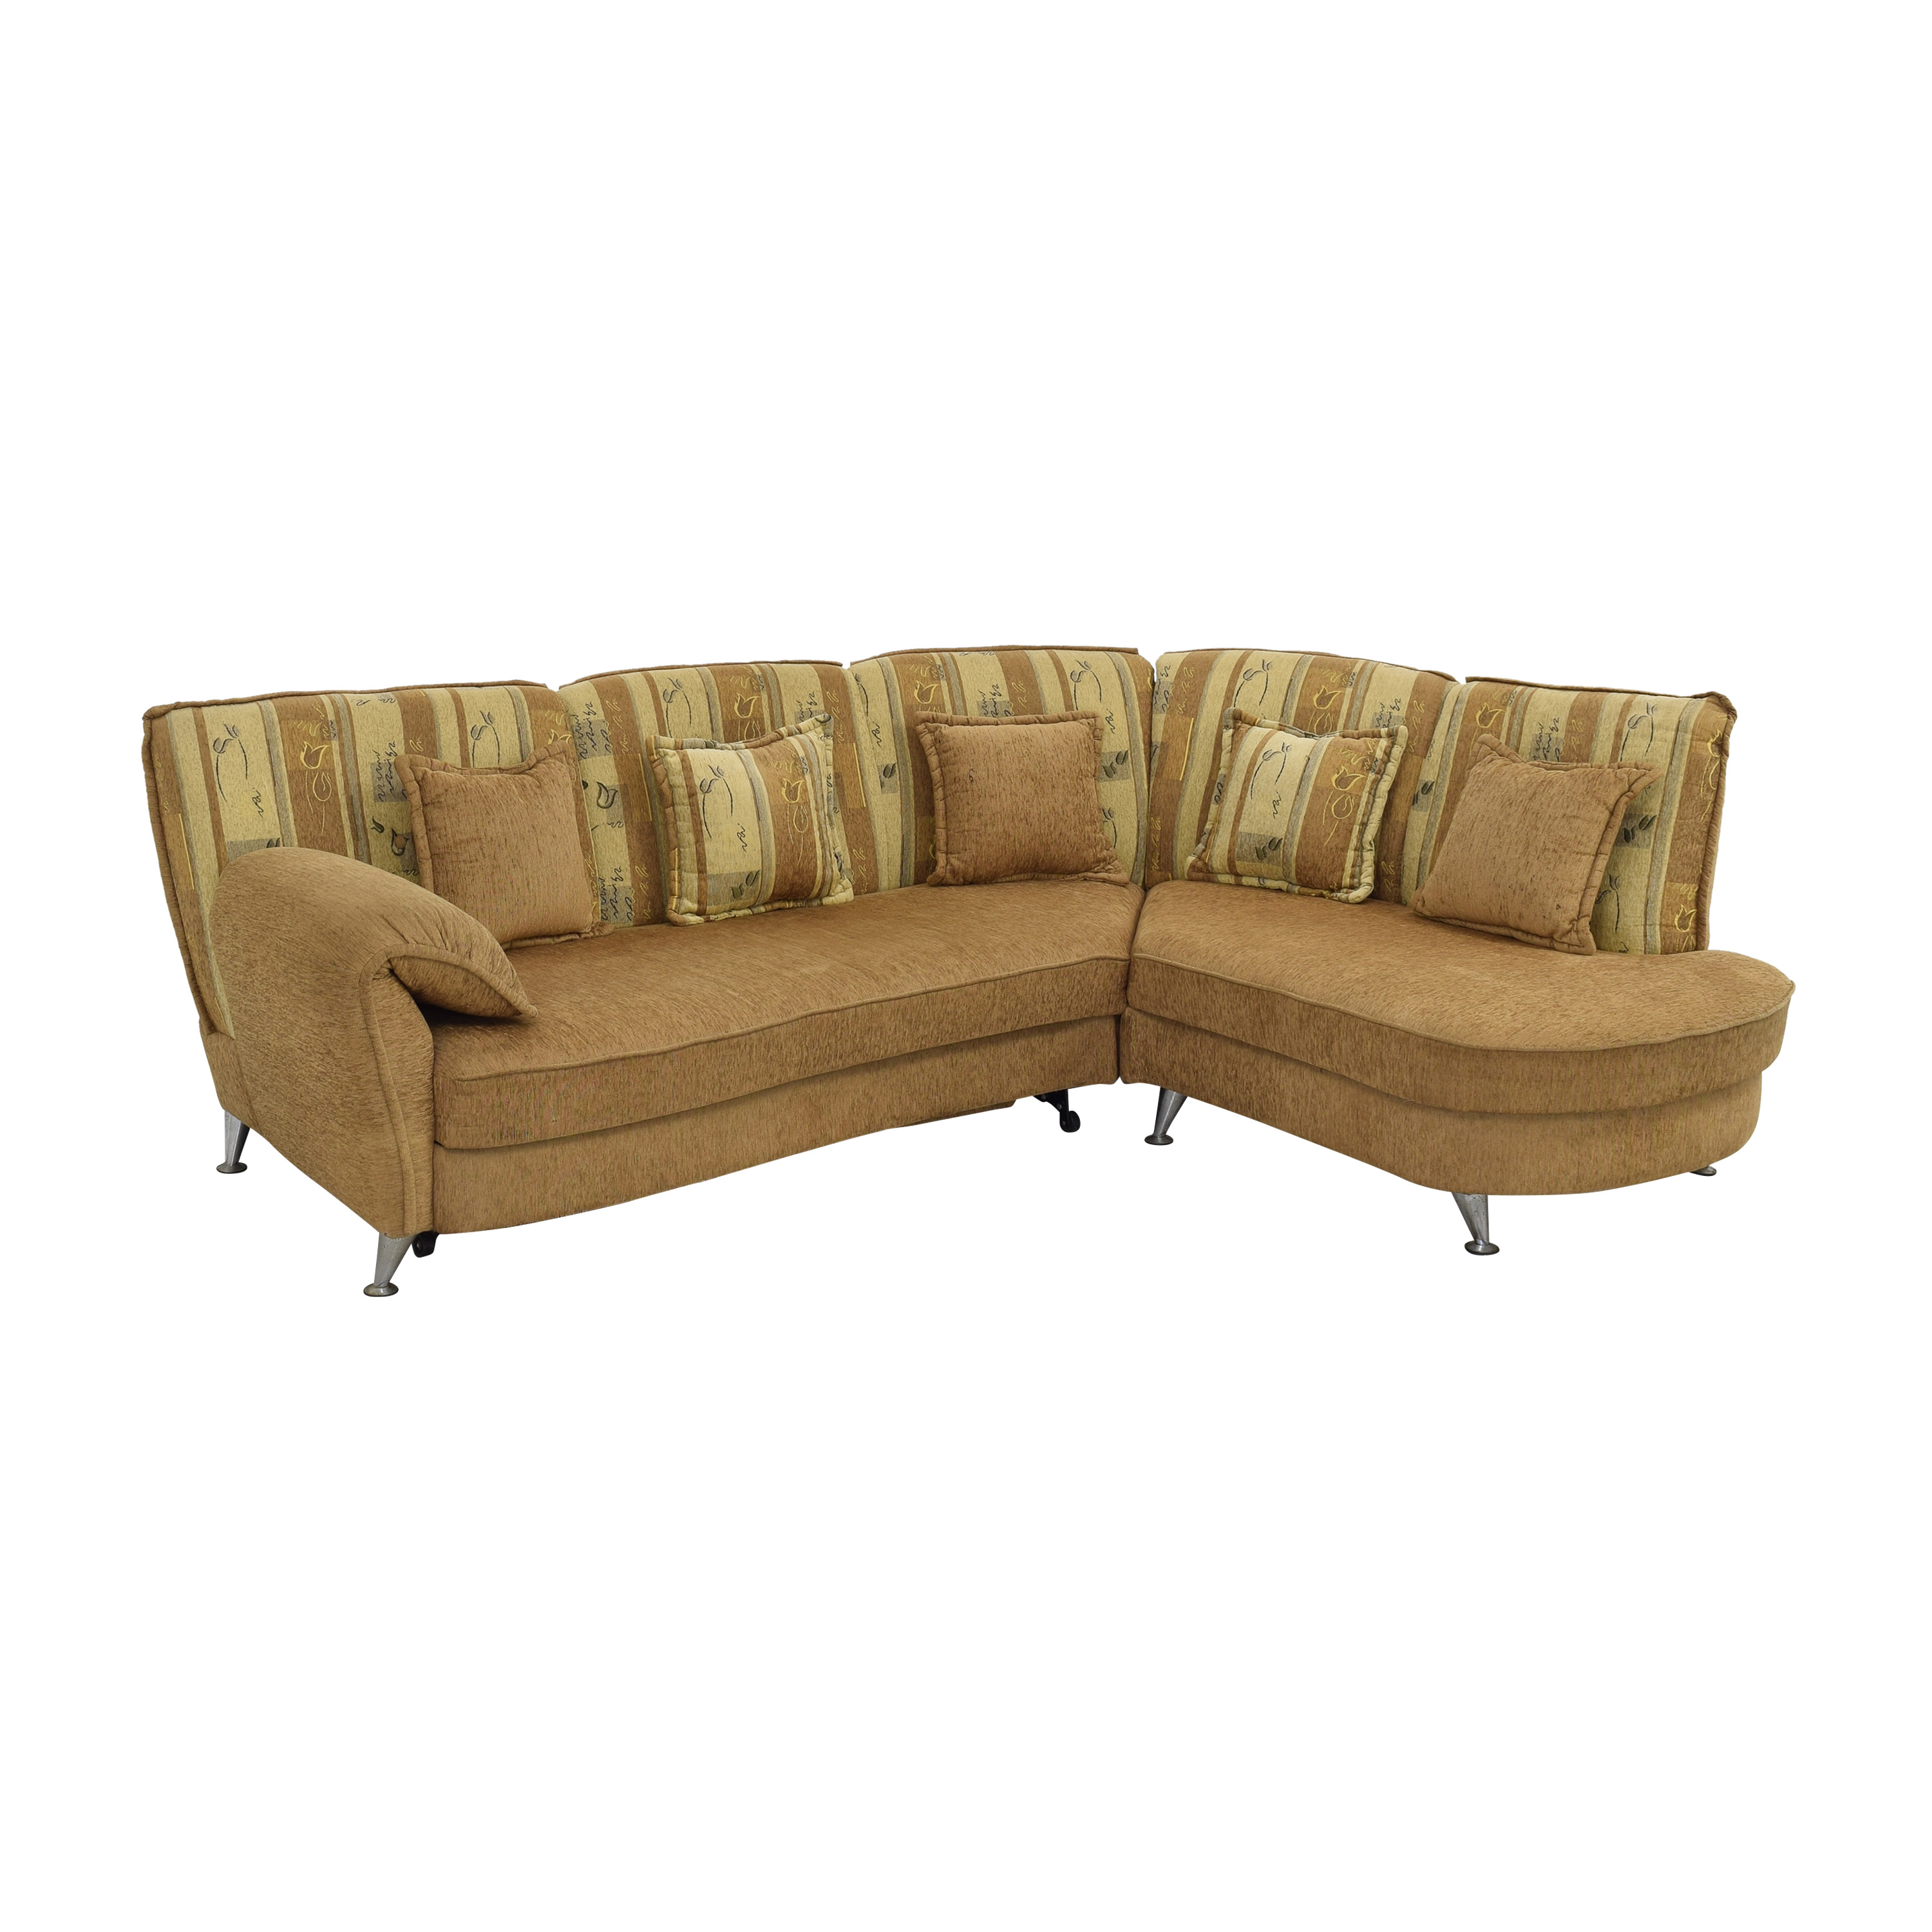 Curved Sectional Sofa with Foldout Bed dimensions